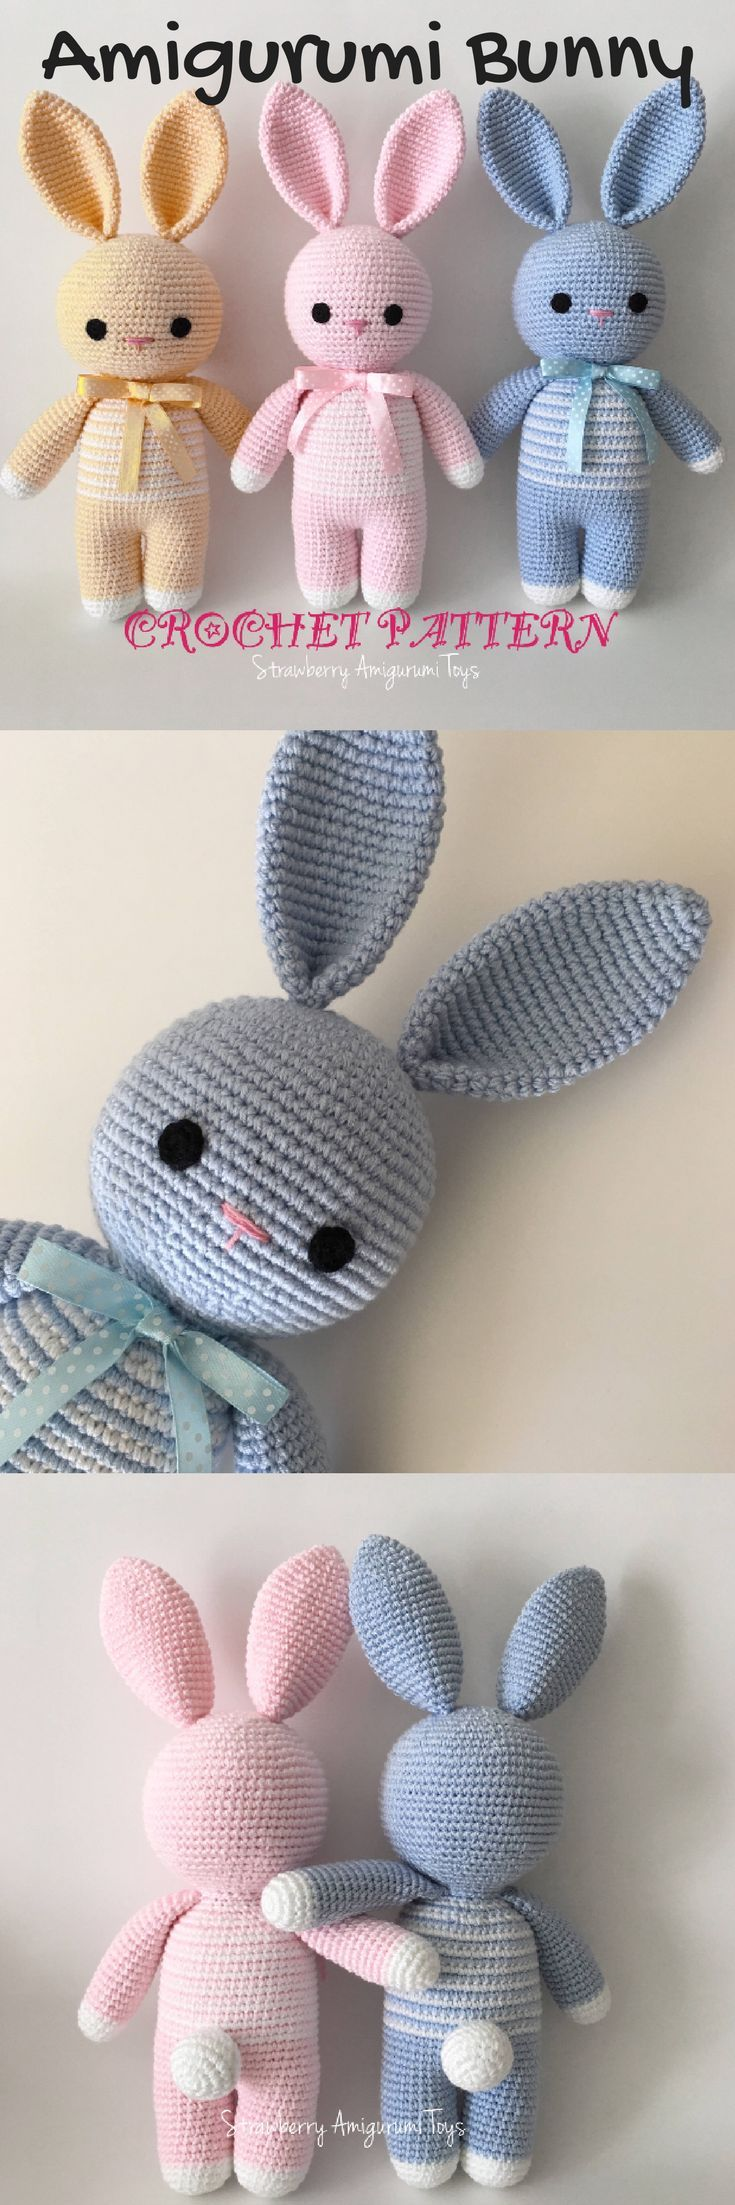 What a sweet bunny pattern! I